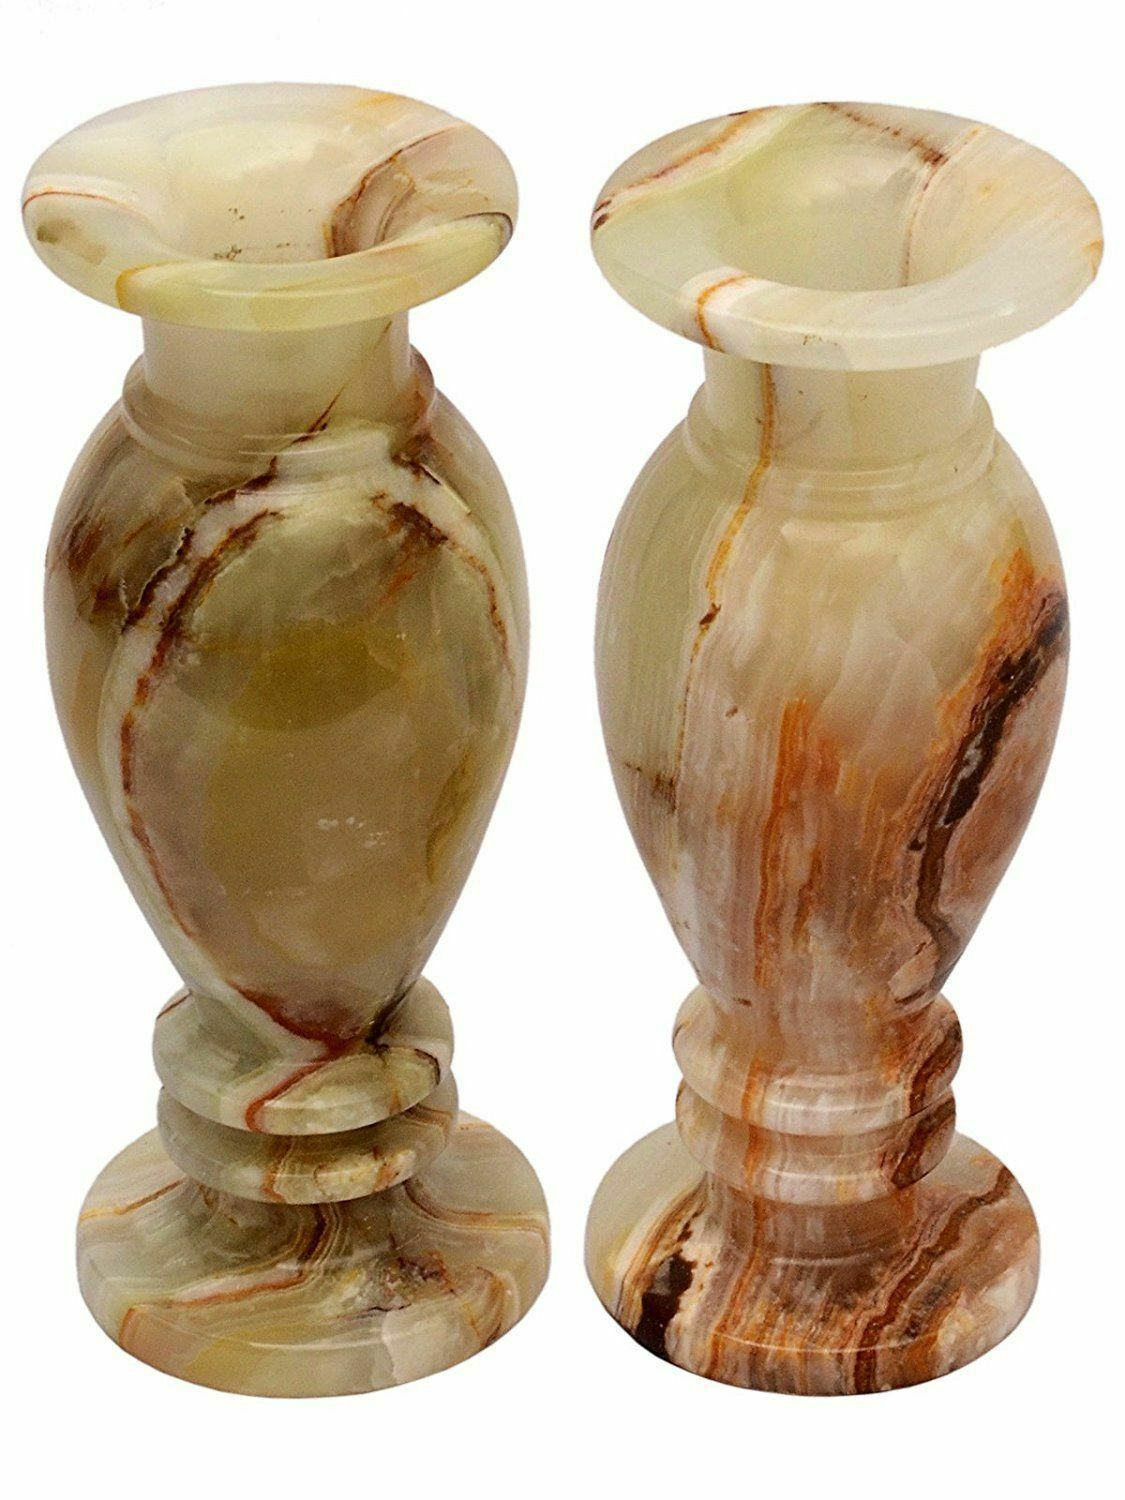 "Primary image for Flower pot Home Decor, Gift Handcrafted Onyx Natural stone Vase (8"", pack of 2)"